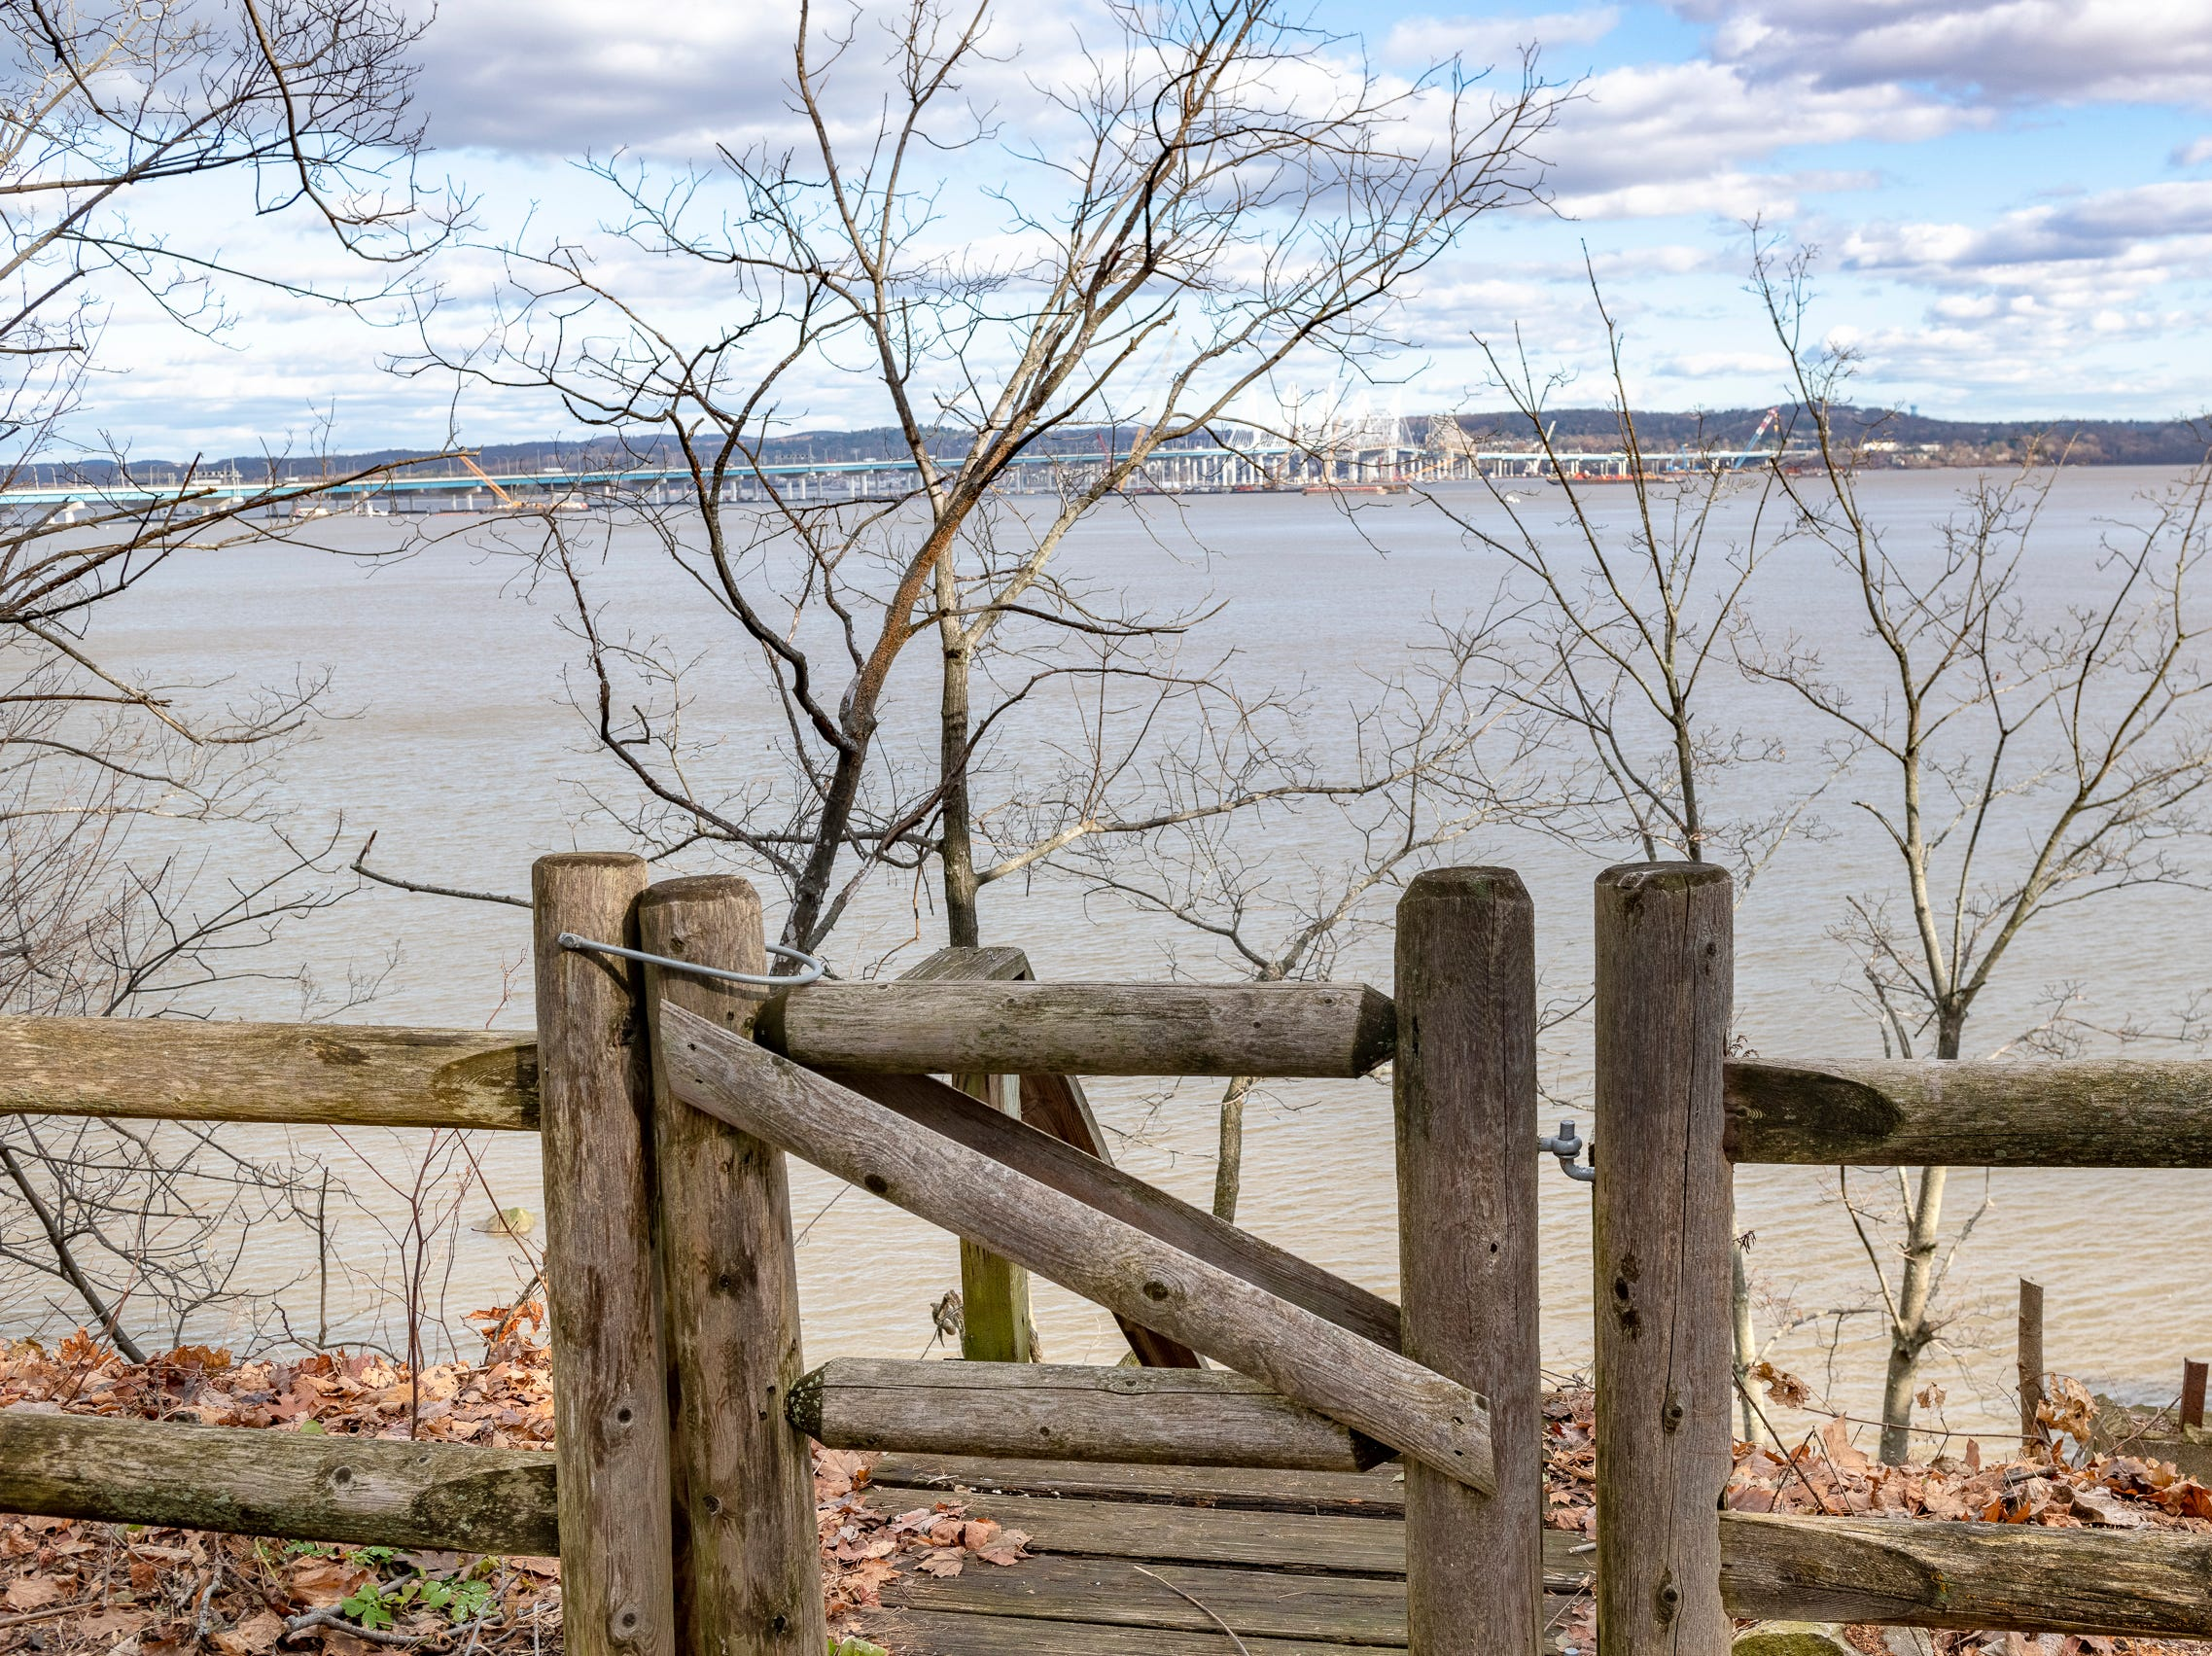 The property includes access to the Hudson River shoreline across River Road.